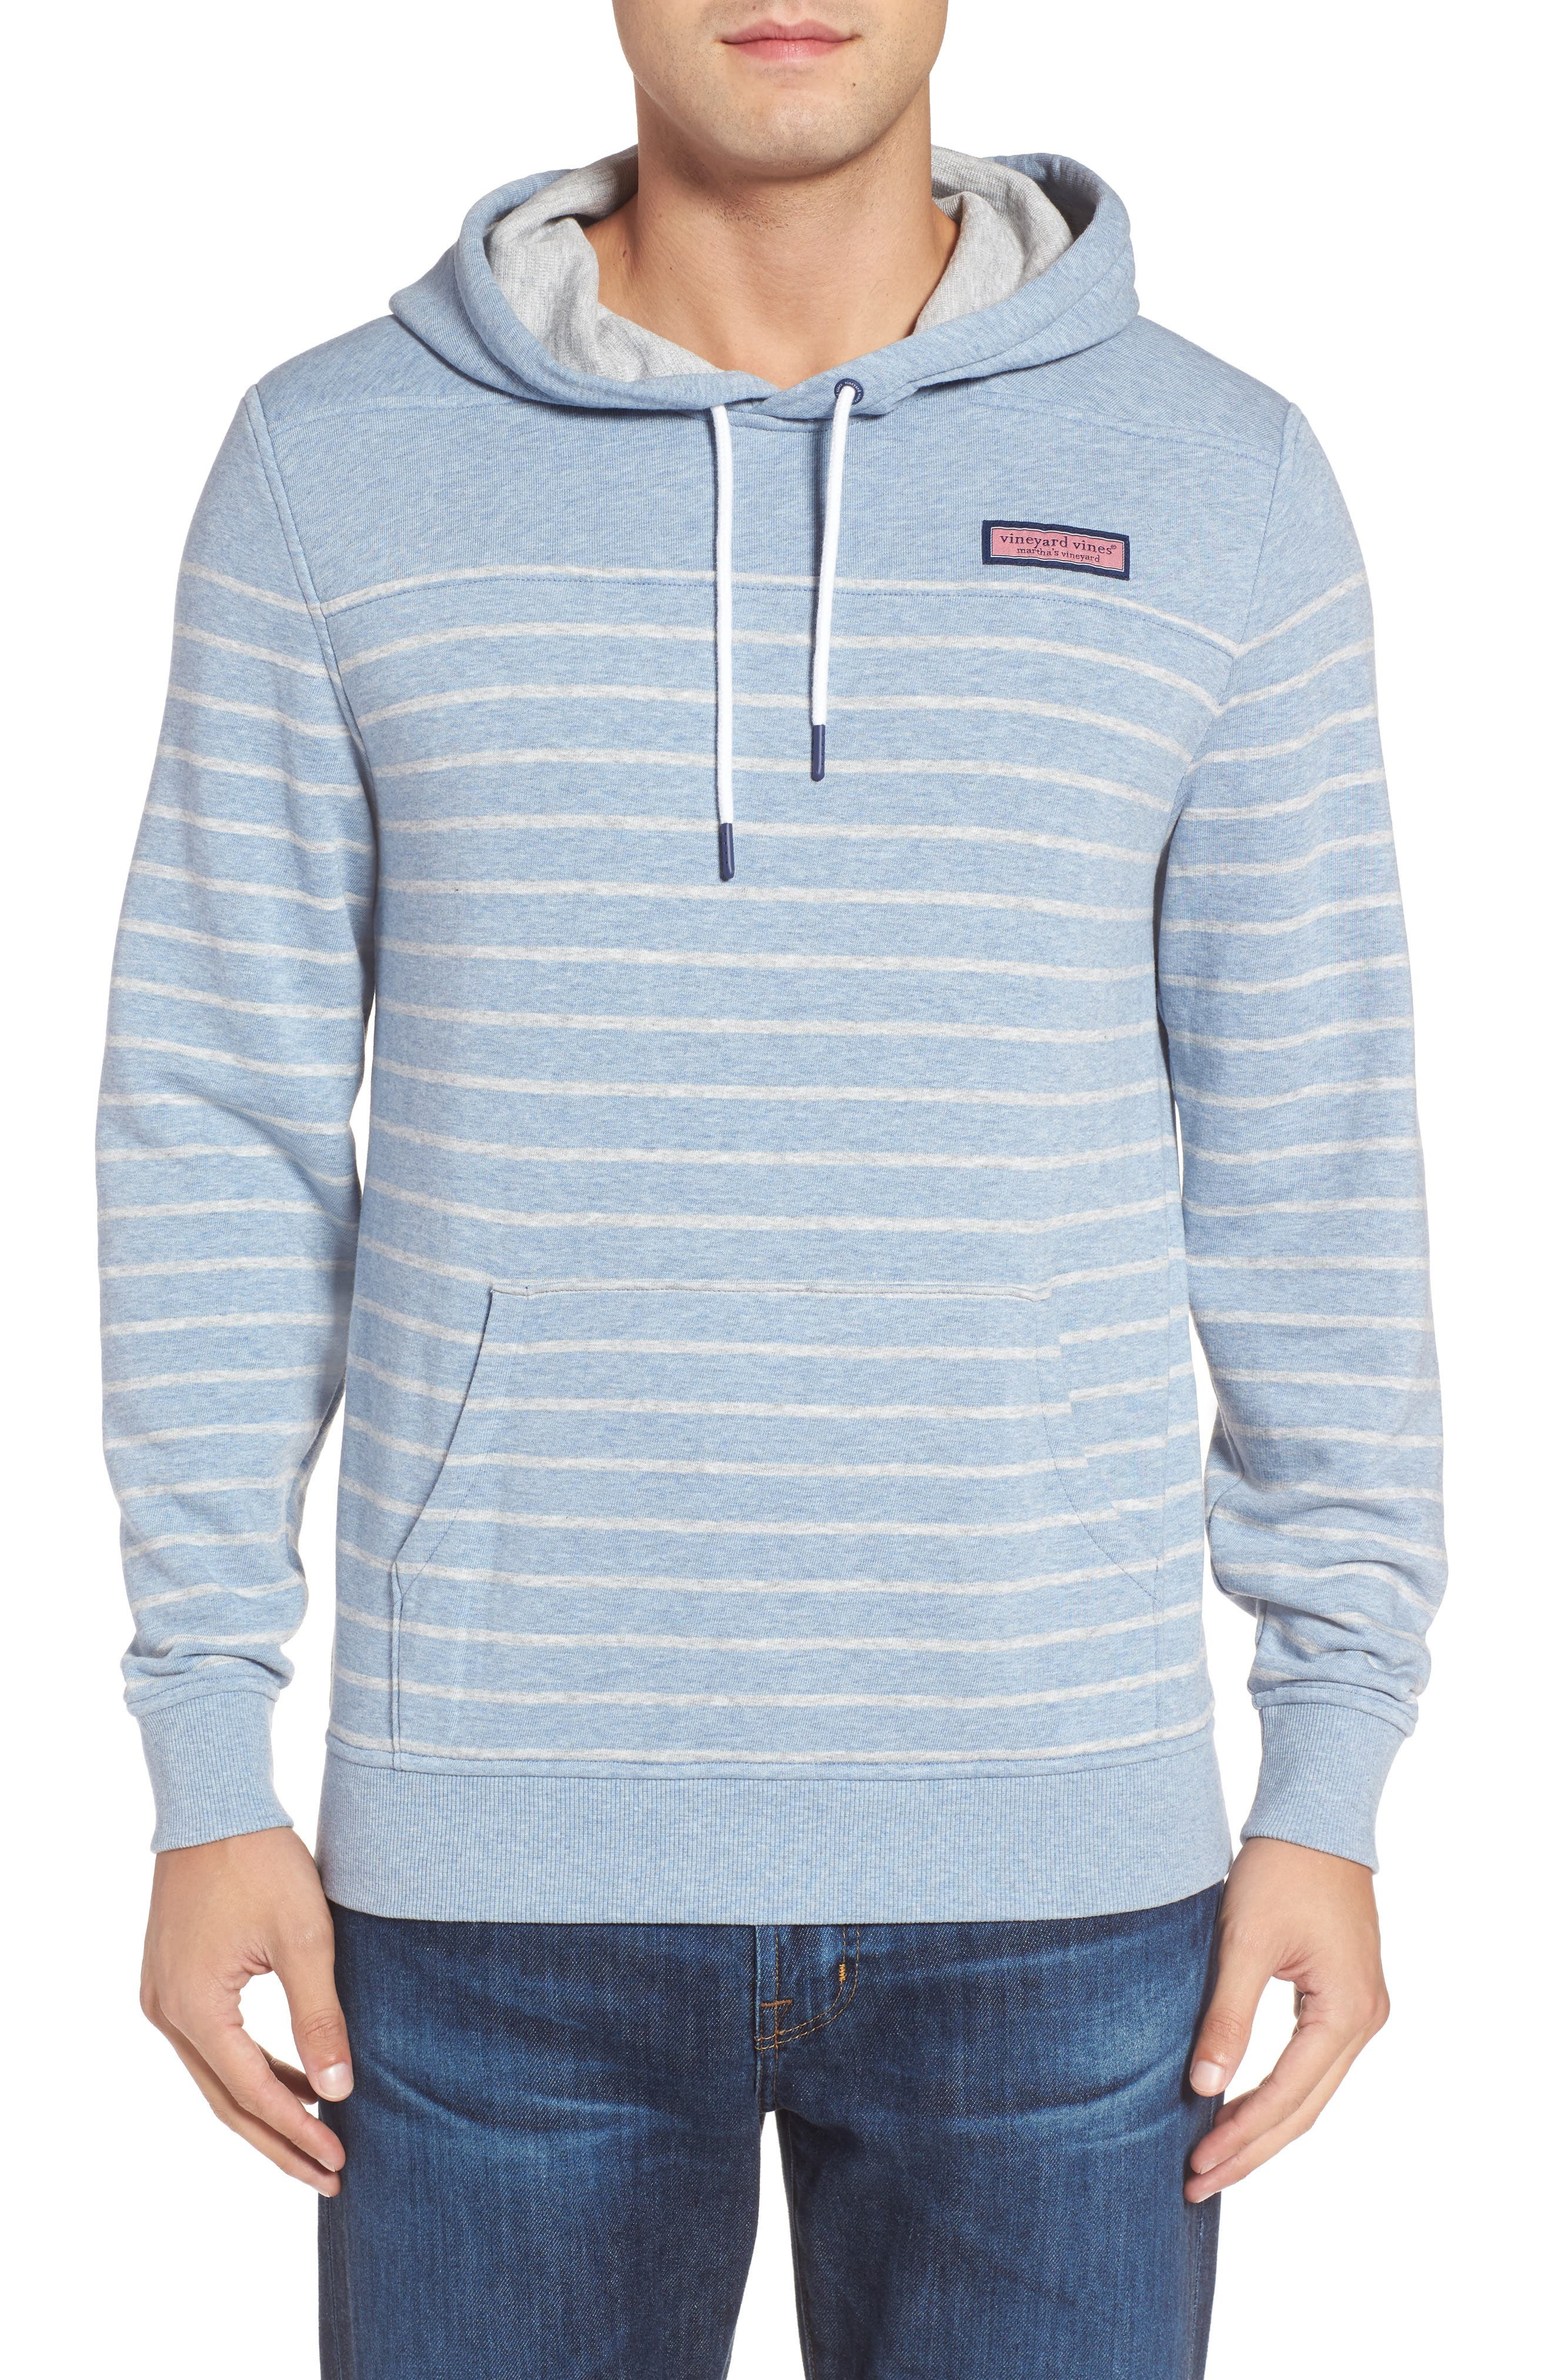 Alternate Image 1 Selected - vineyard vines Stripe Washed Cotton Pullover Hoodie